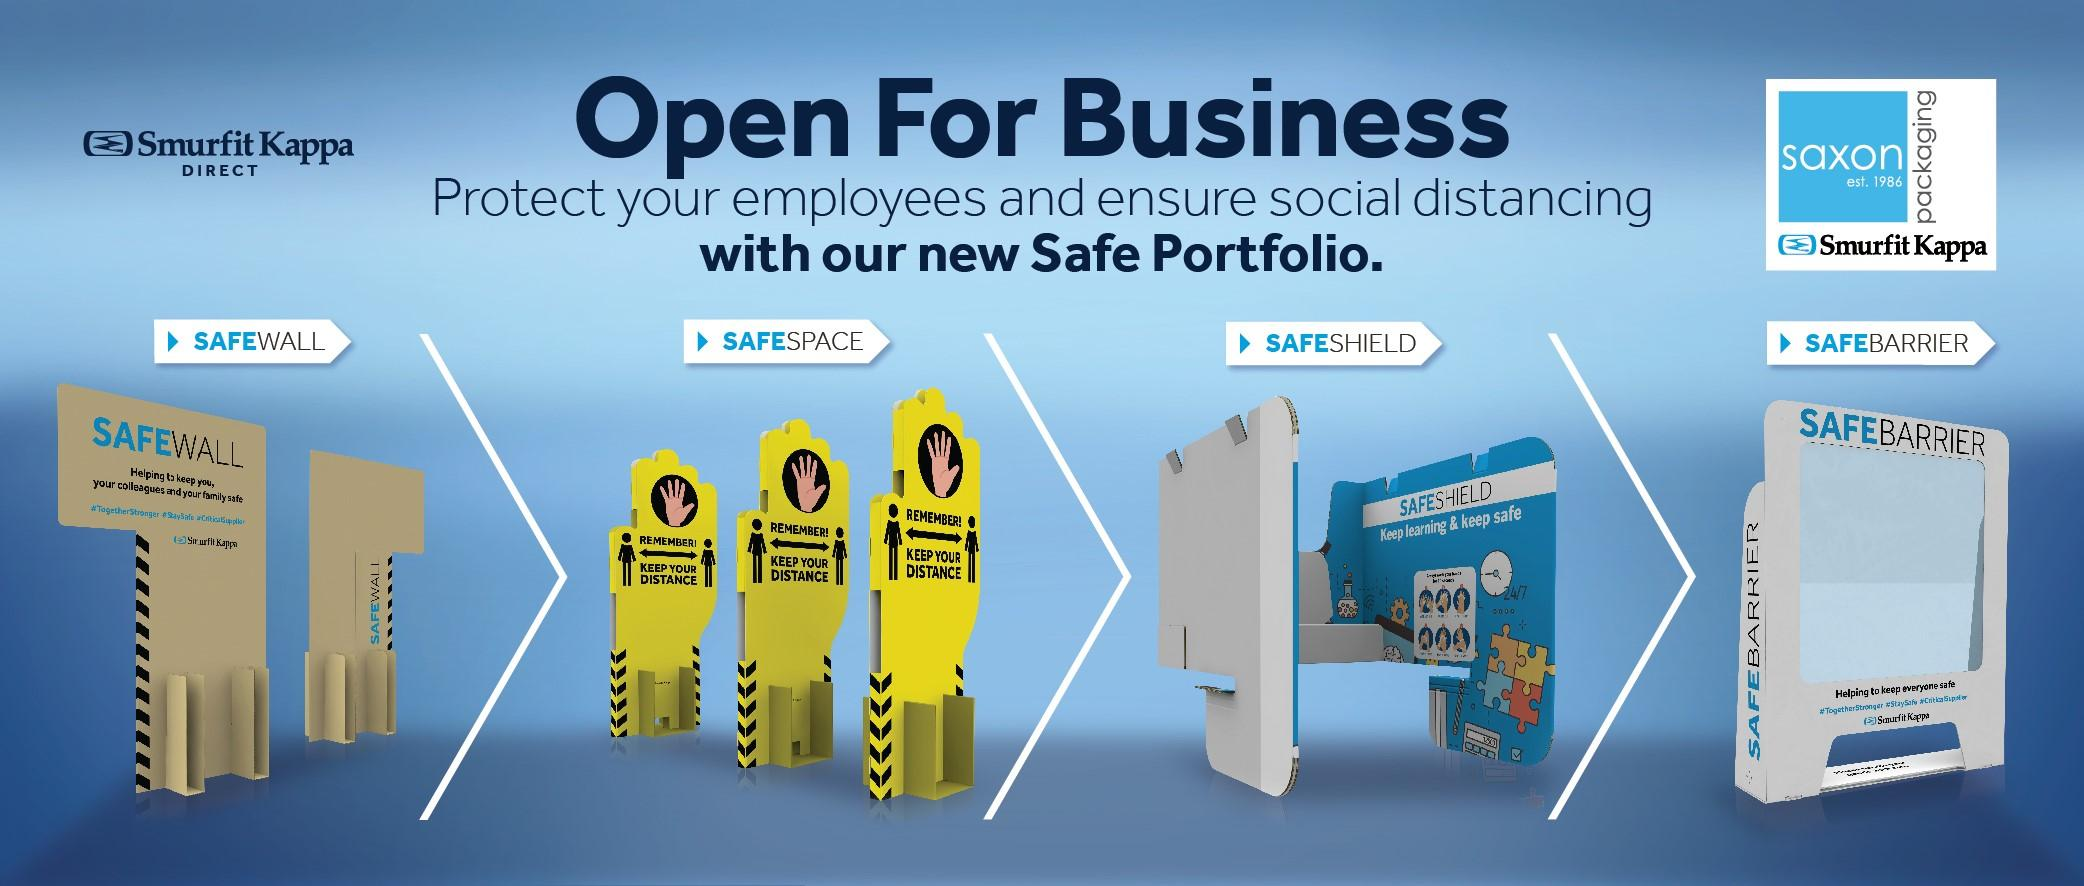 Smurfit Kappa Safe Port Folio - Social Distancing Products - Saxon Packaging